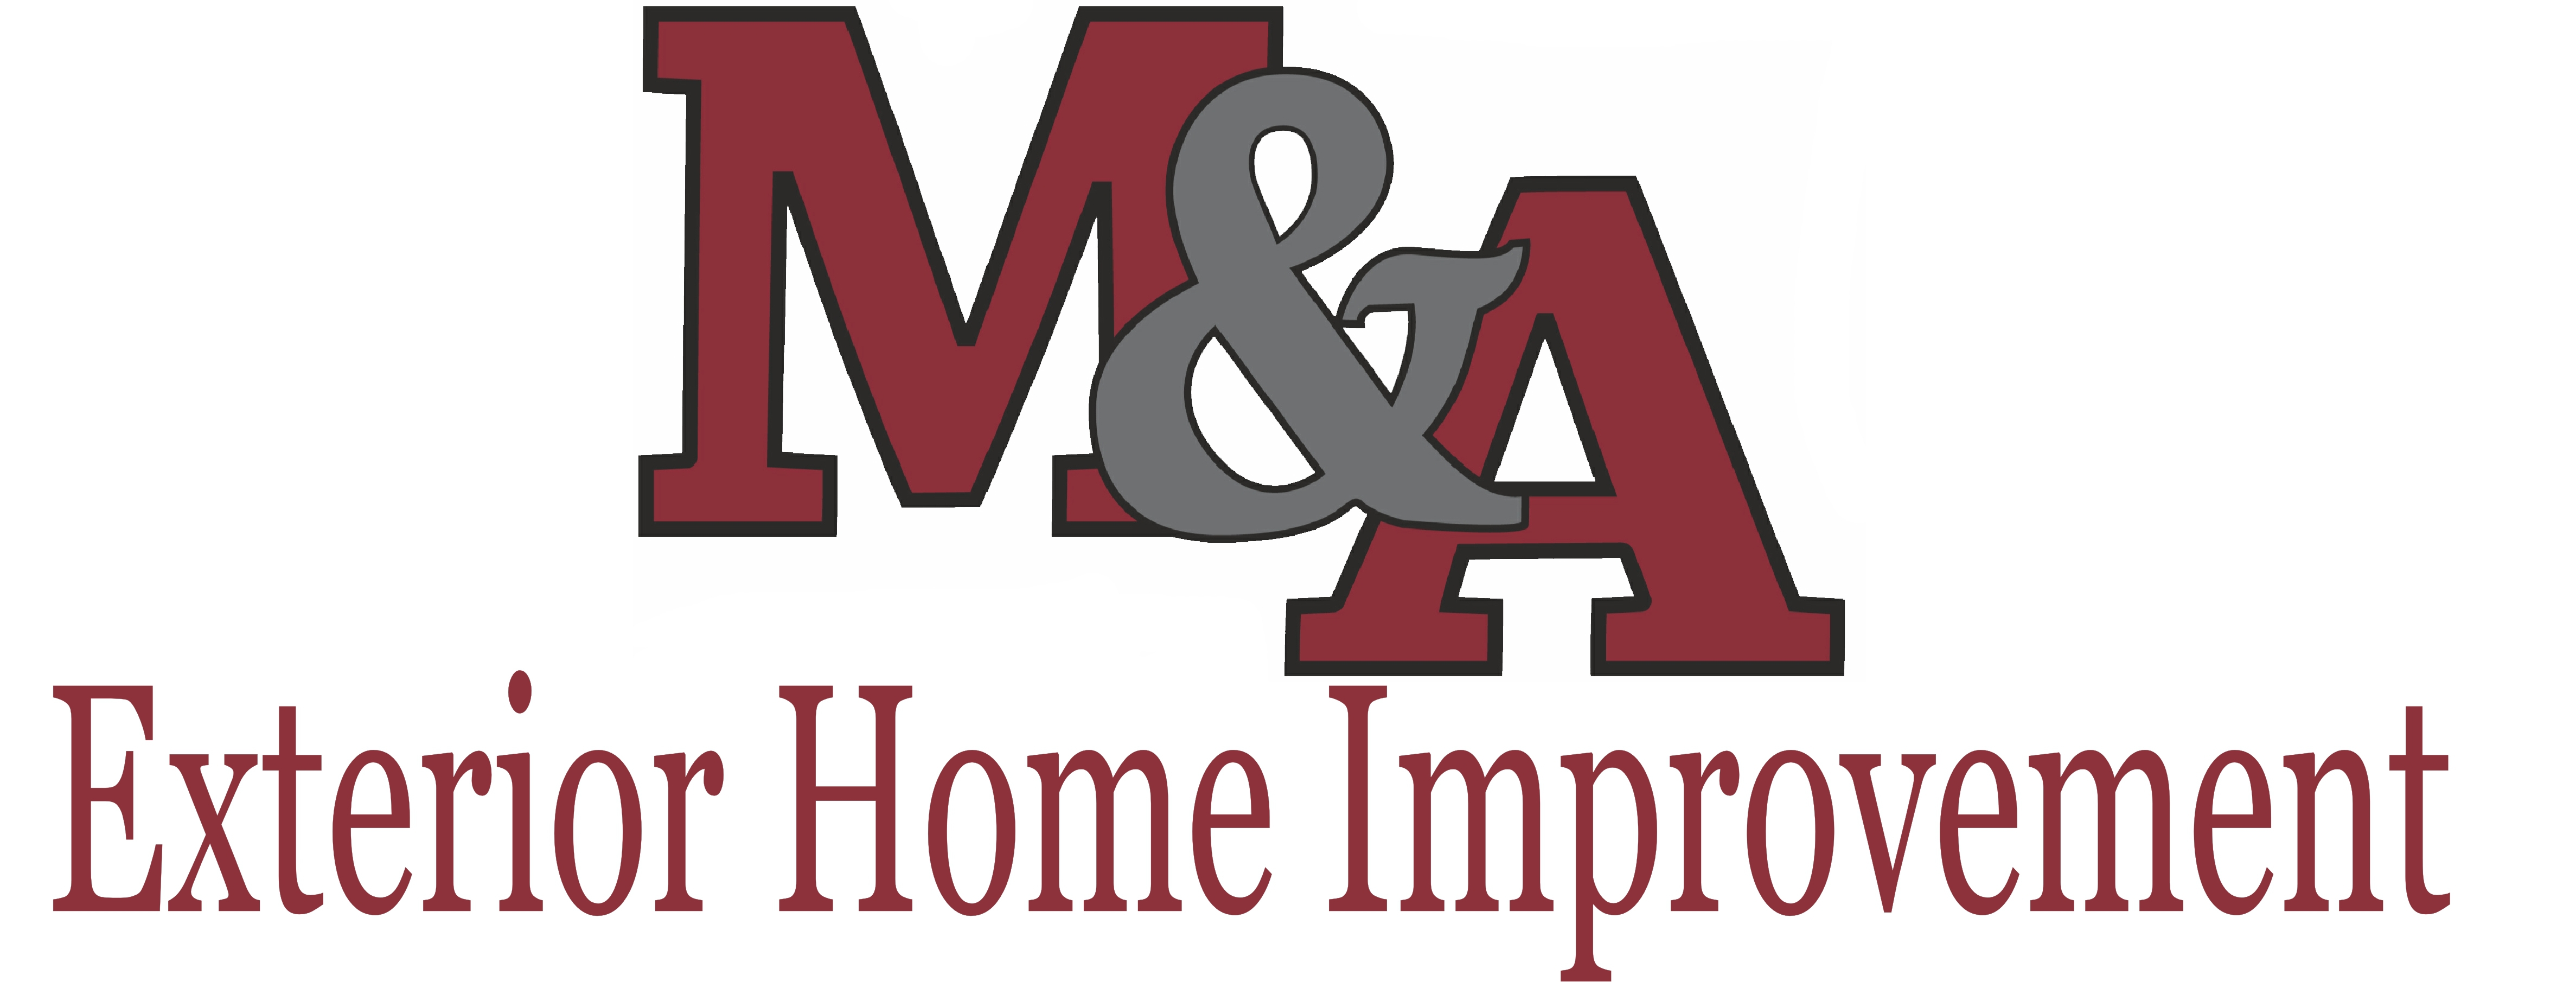 M&A Roof Home Improvement VA